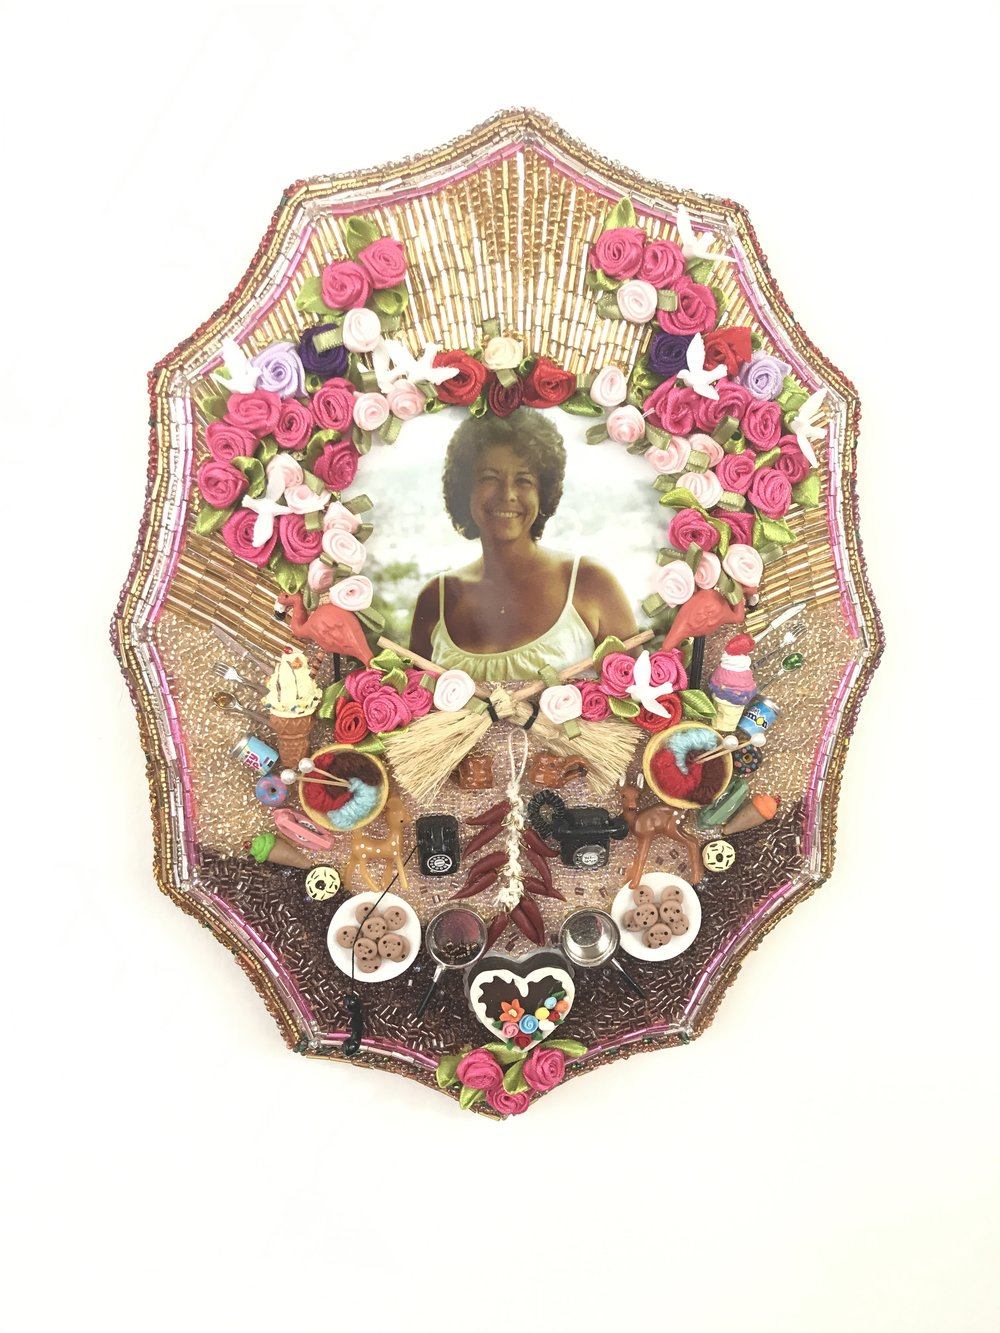 Margarita AKA Cookie - Multimedia assemblage (photograph, beads, miniatures), 12